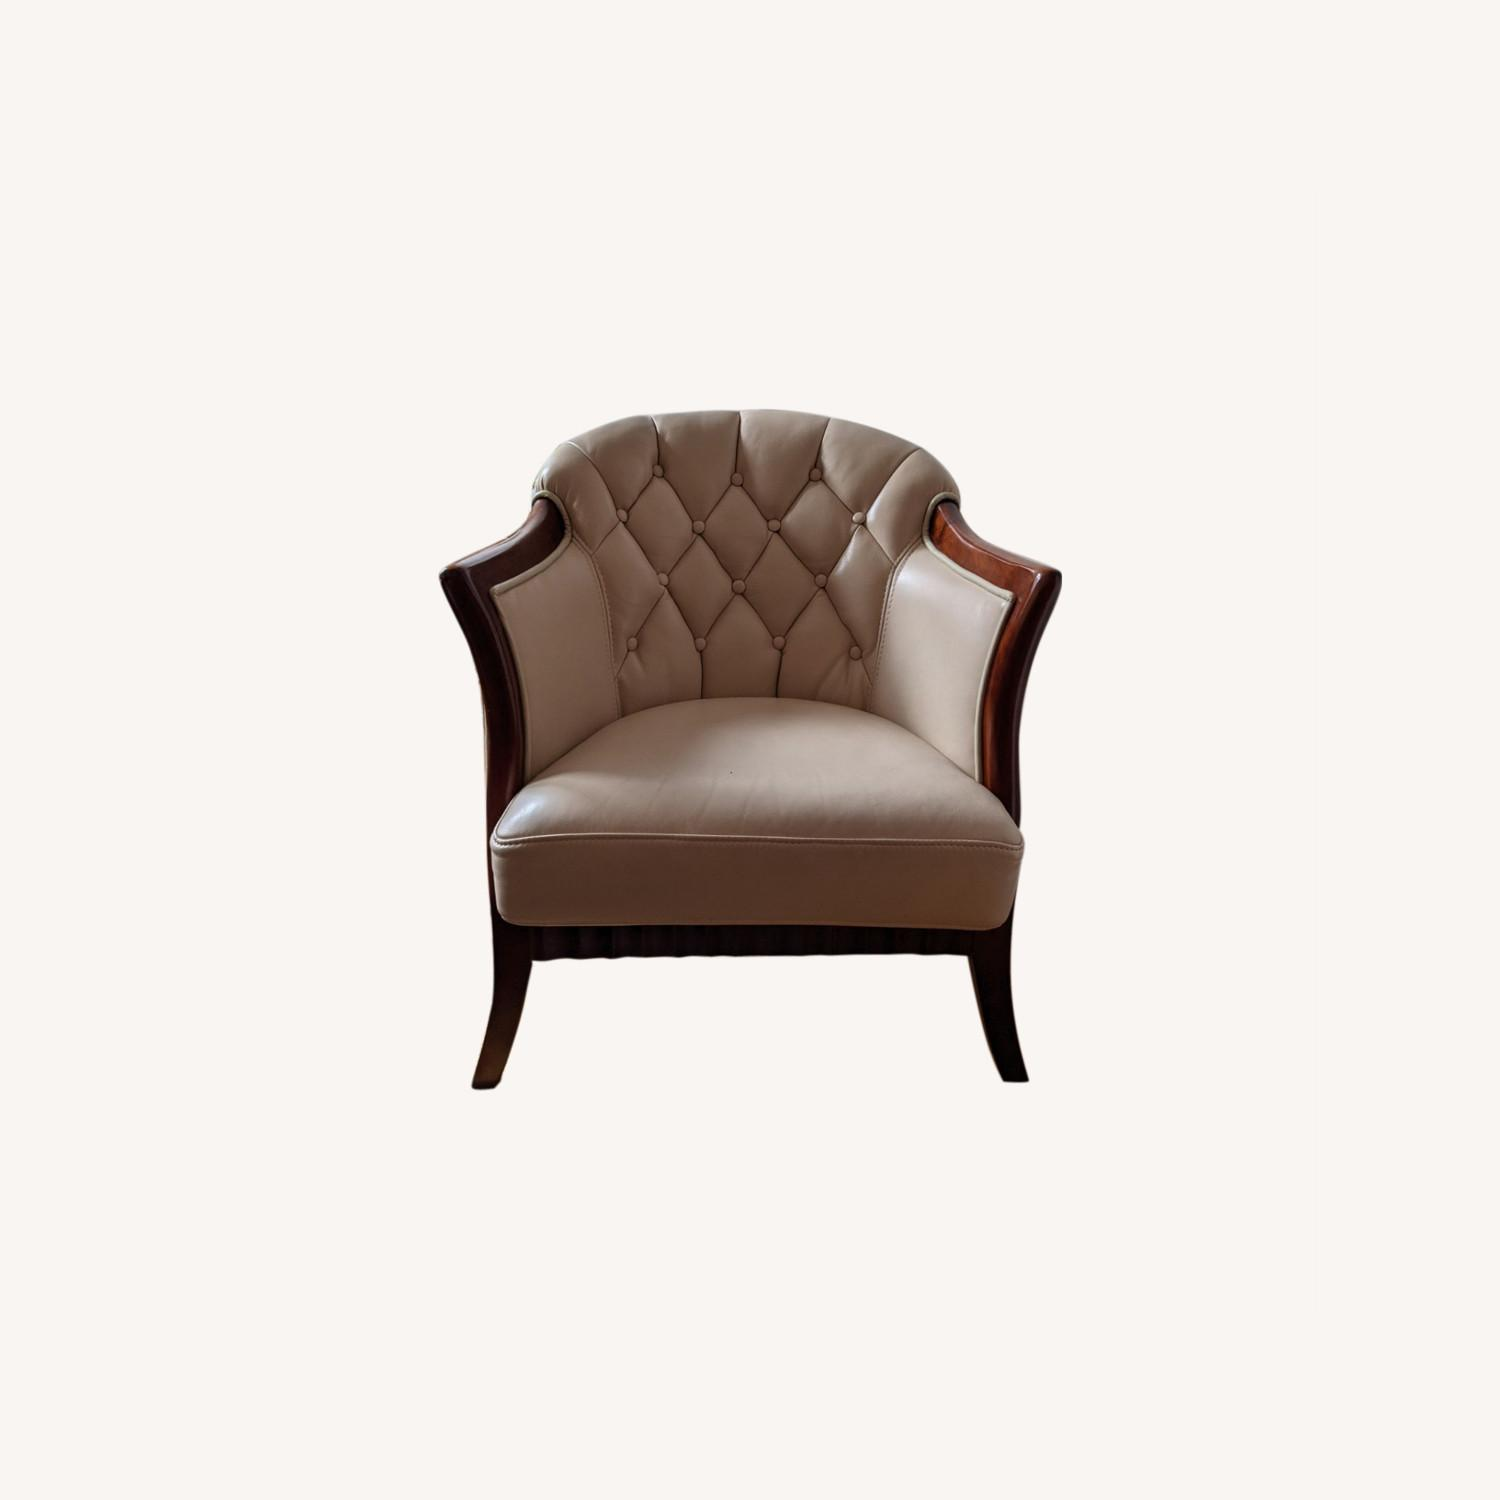 Taupe Tufted Leather Arm Chair Set - image-0